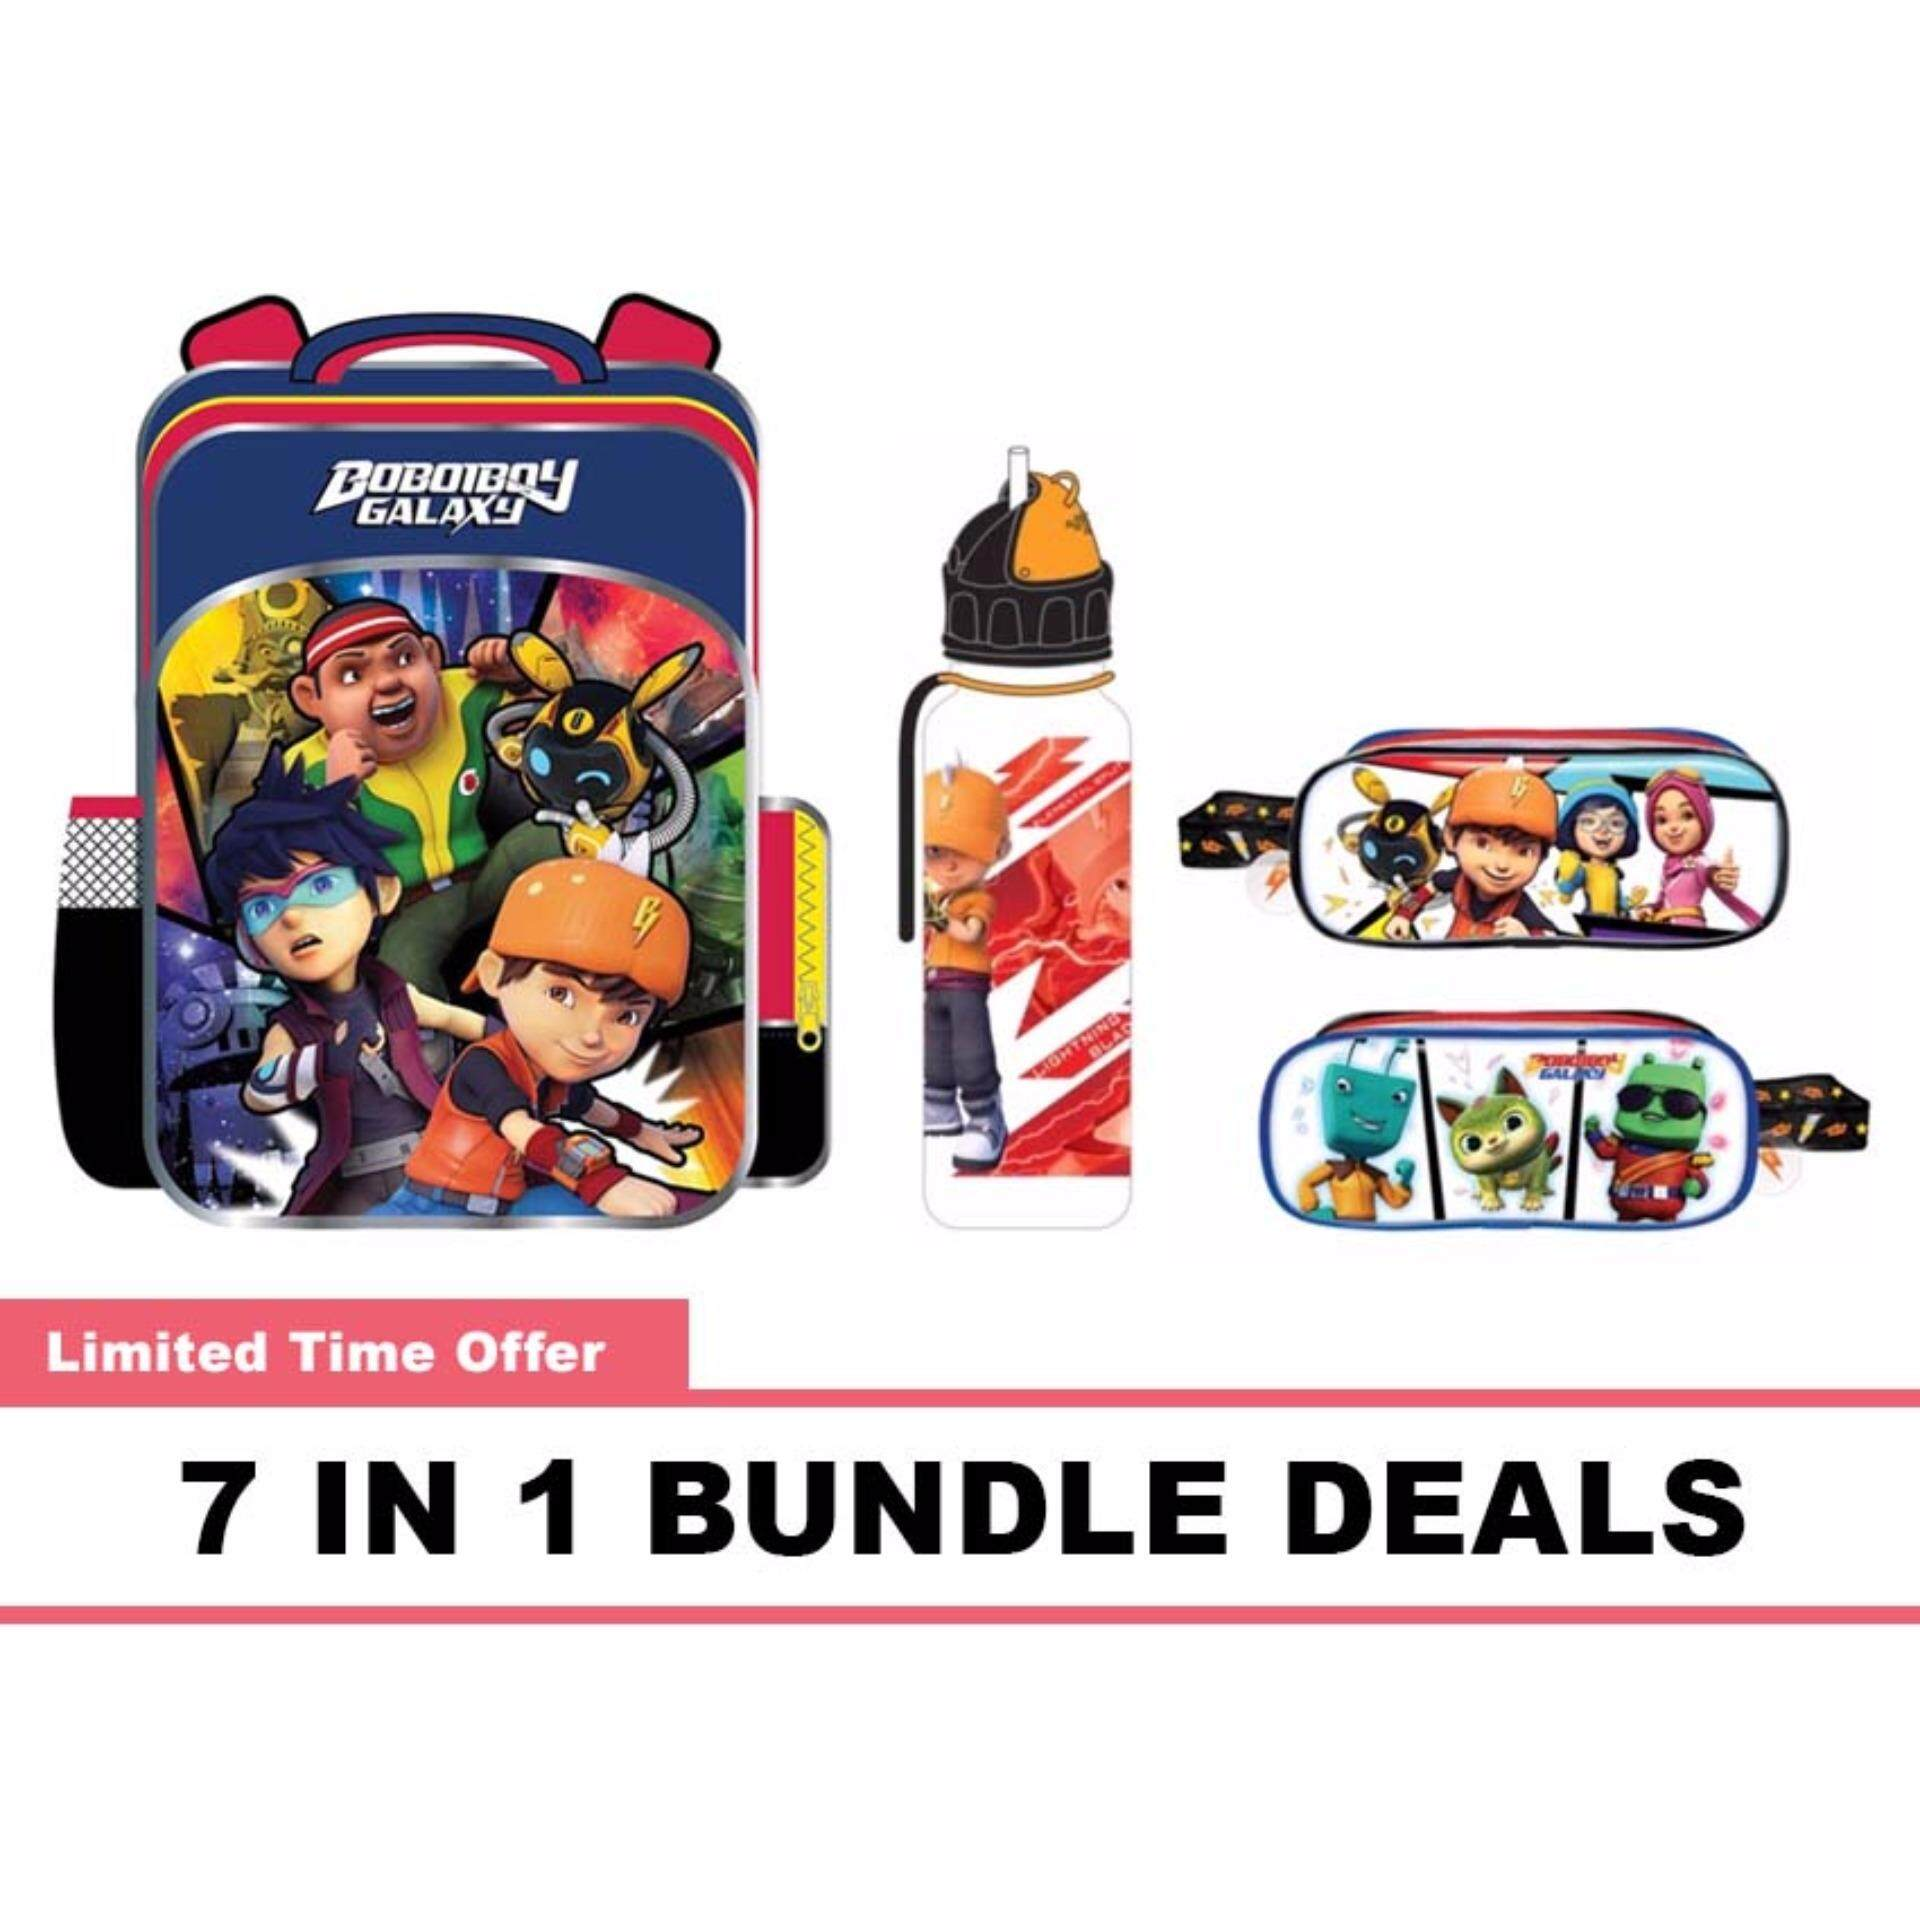 BoBoiBoy School Bag, Water Bottle, Pencil Bag, Stationery 7 In 1 Bundle Deals